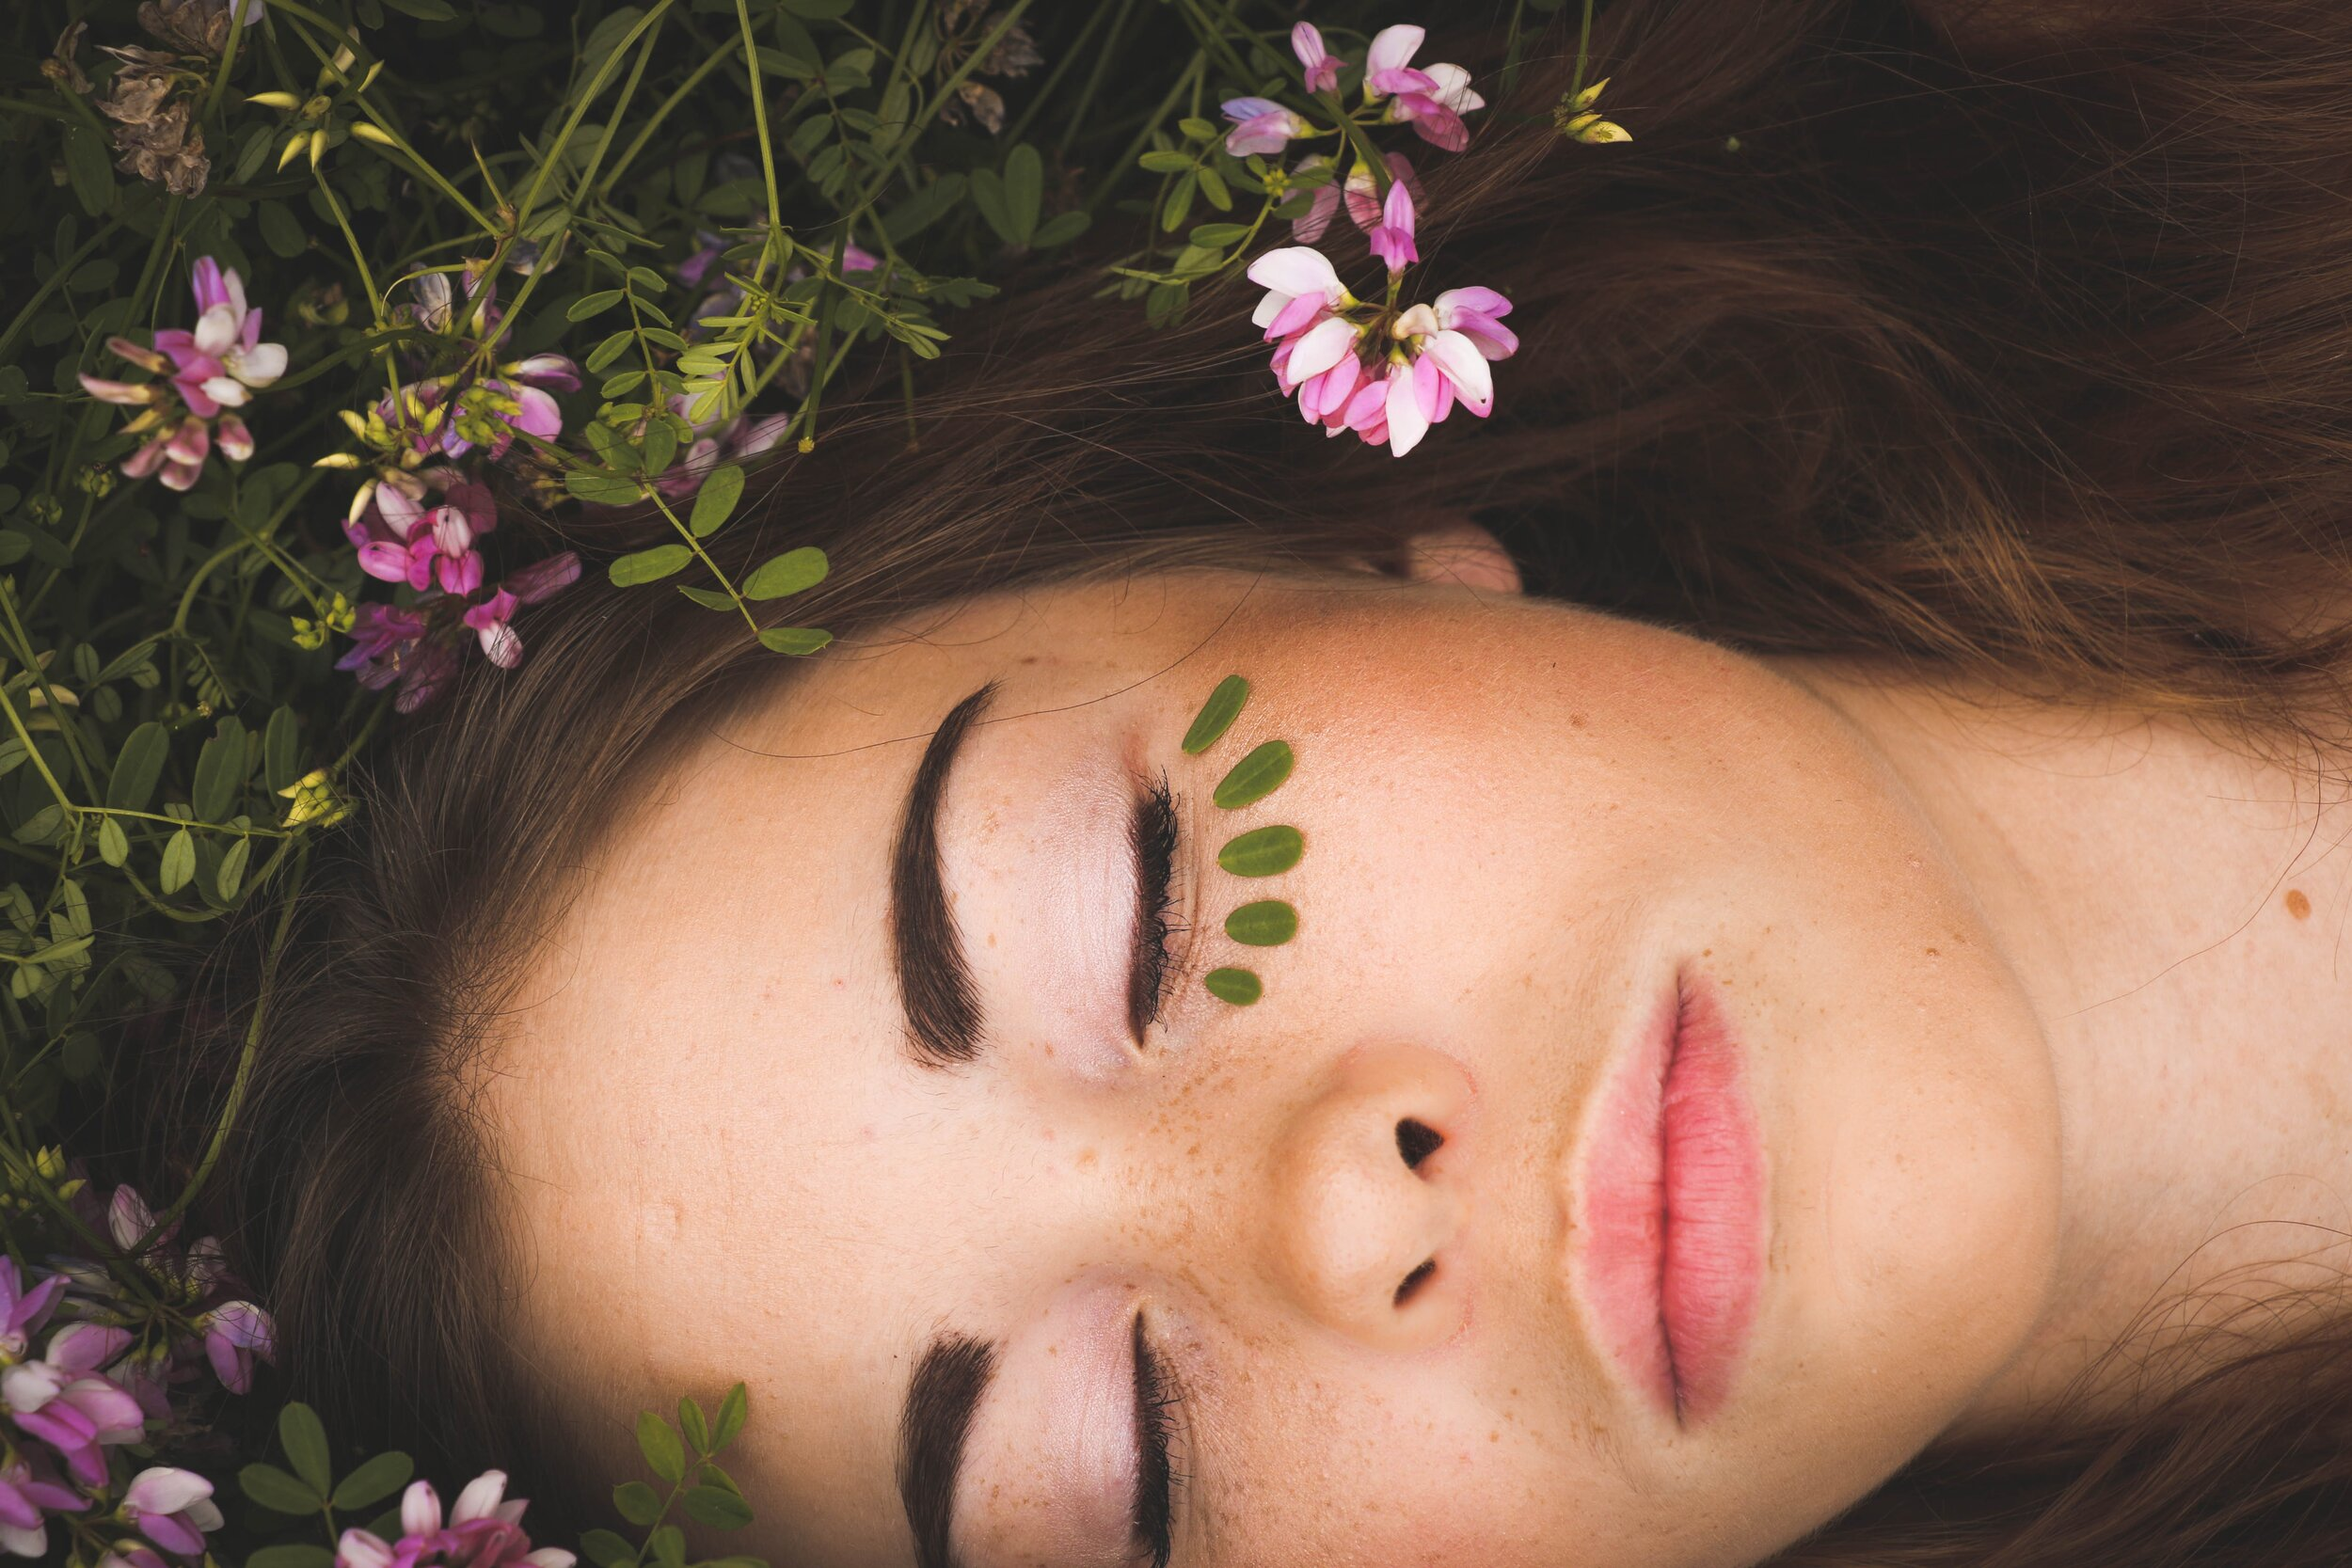 young-teenage-girl-laying-in-grass-flowers